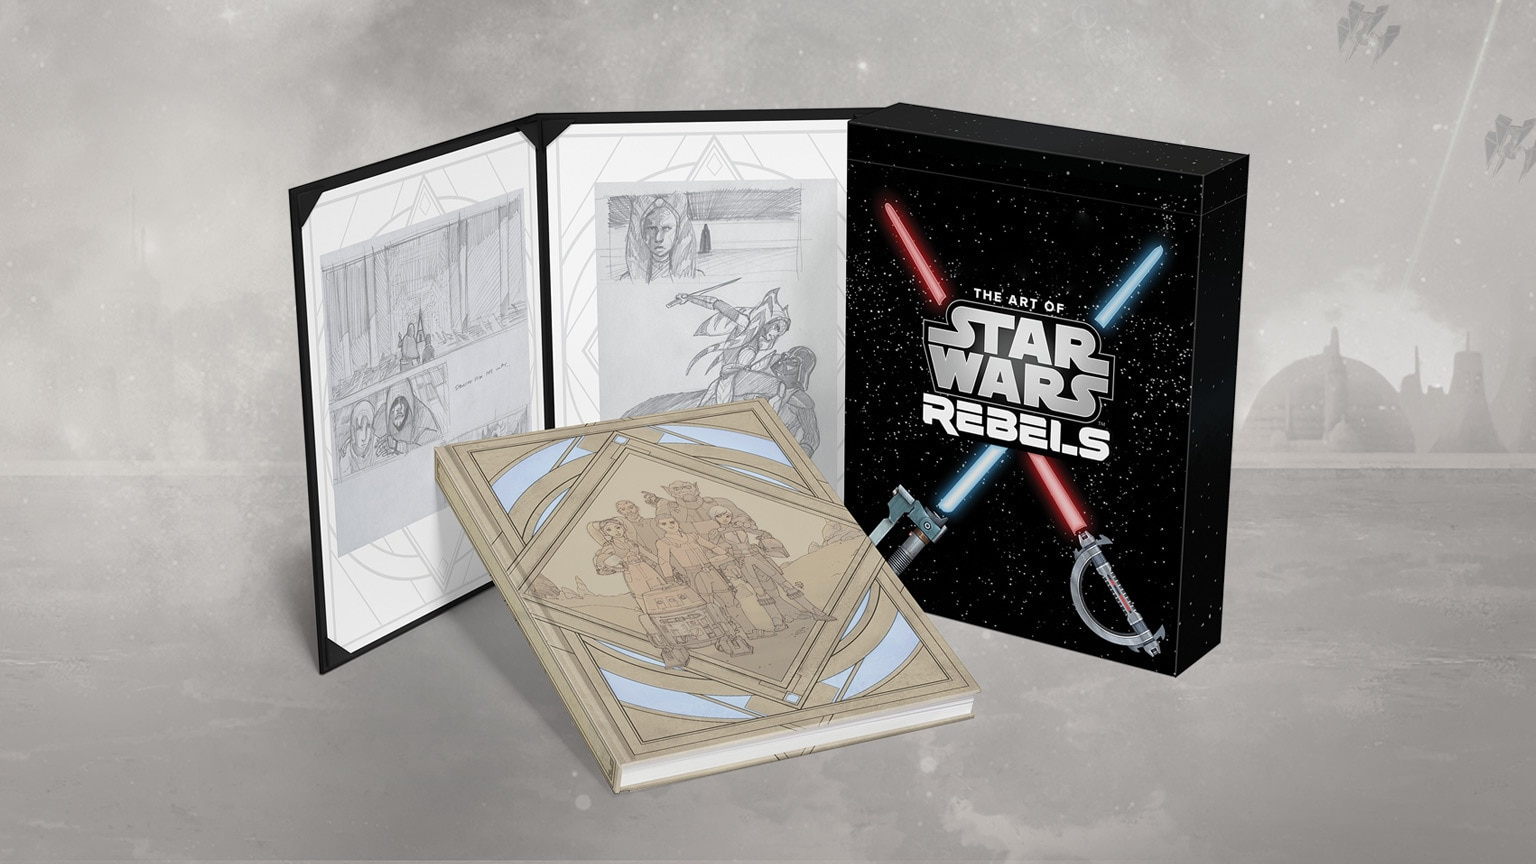 Get a First Look at The Art of Star Wars Rebels Limited Edition